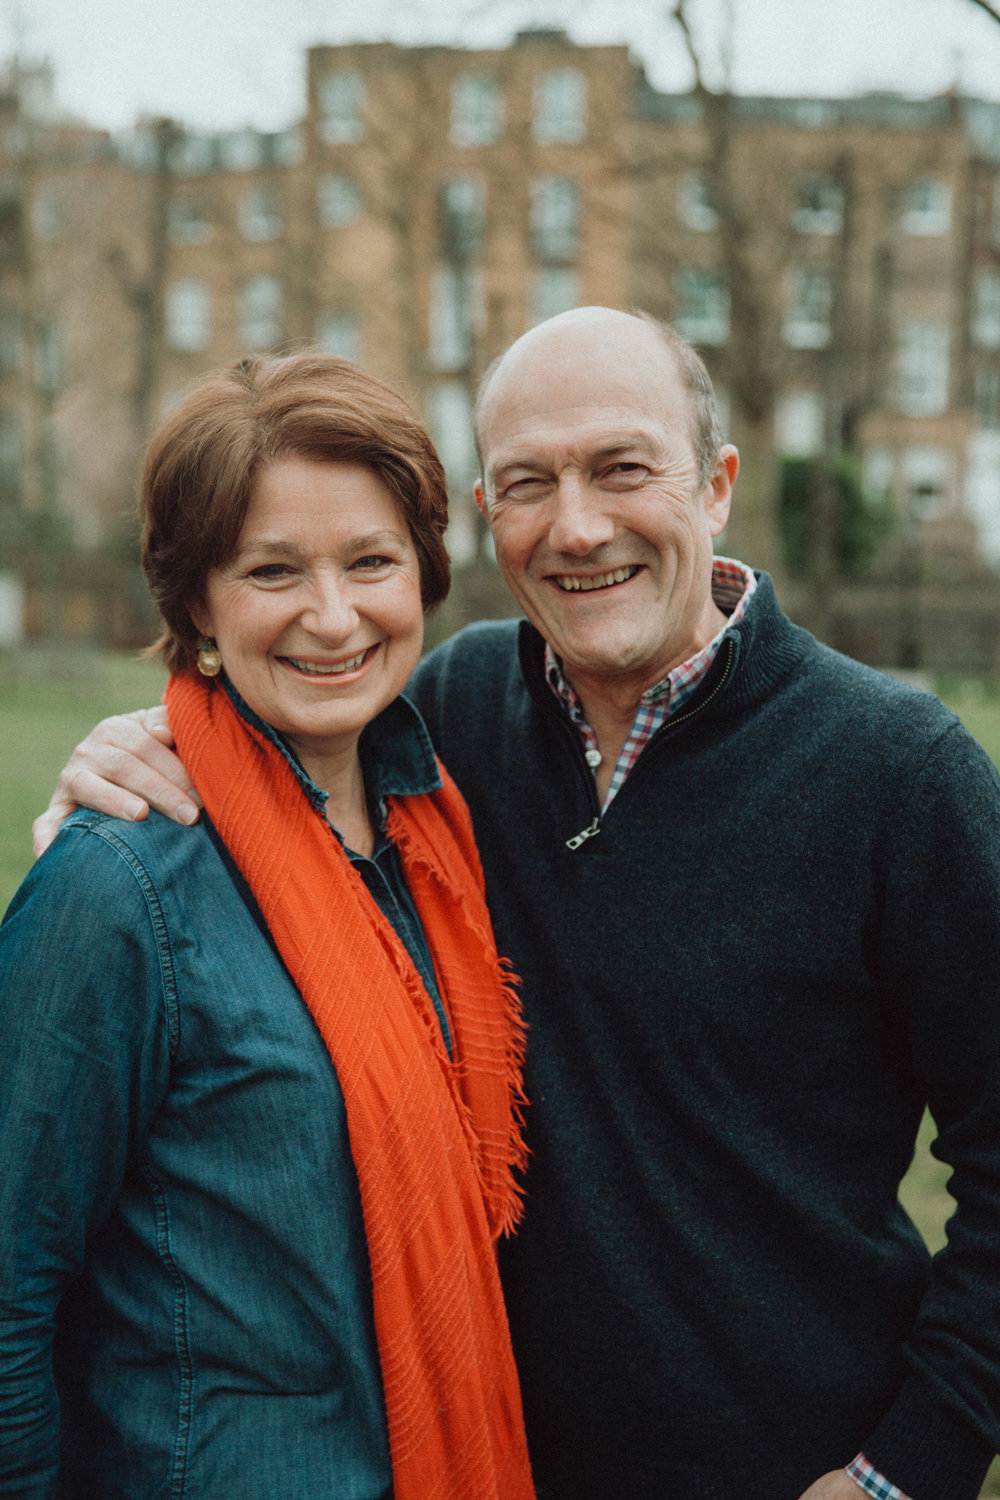 Nicky and Sila Lee - Family Life Pastor and founders of The Marriage Courses